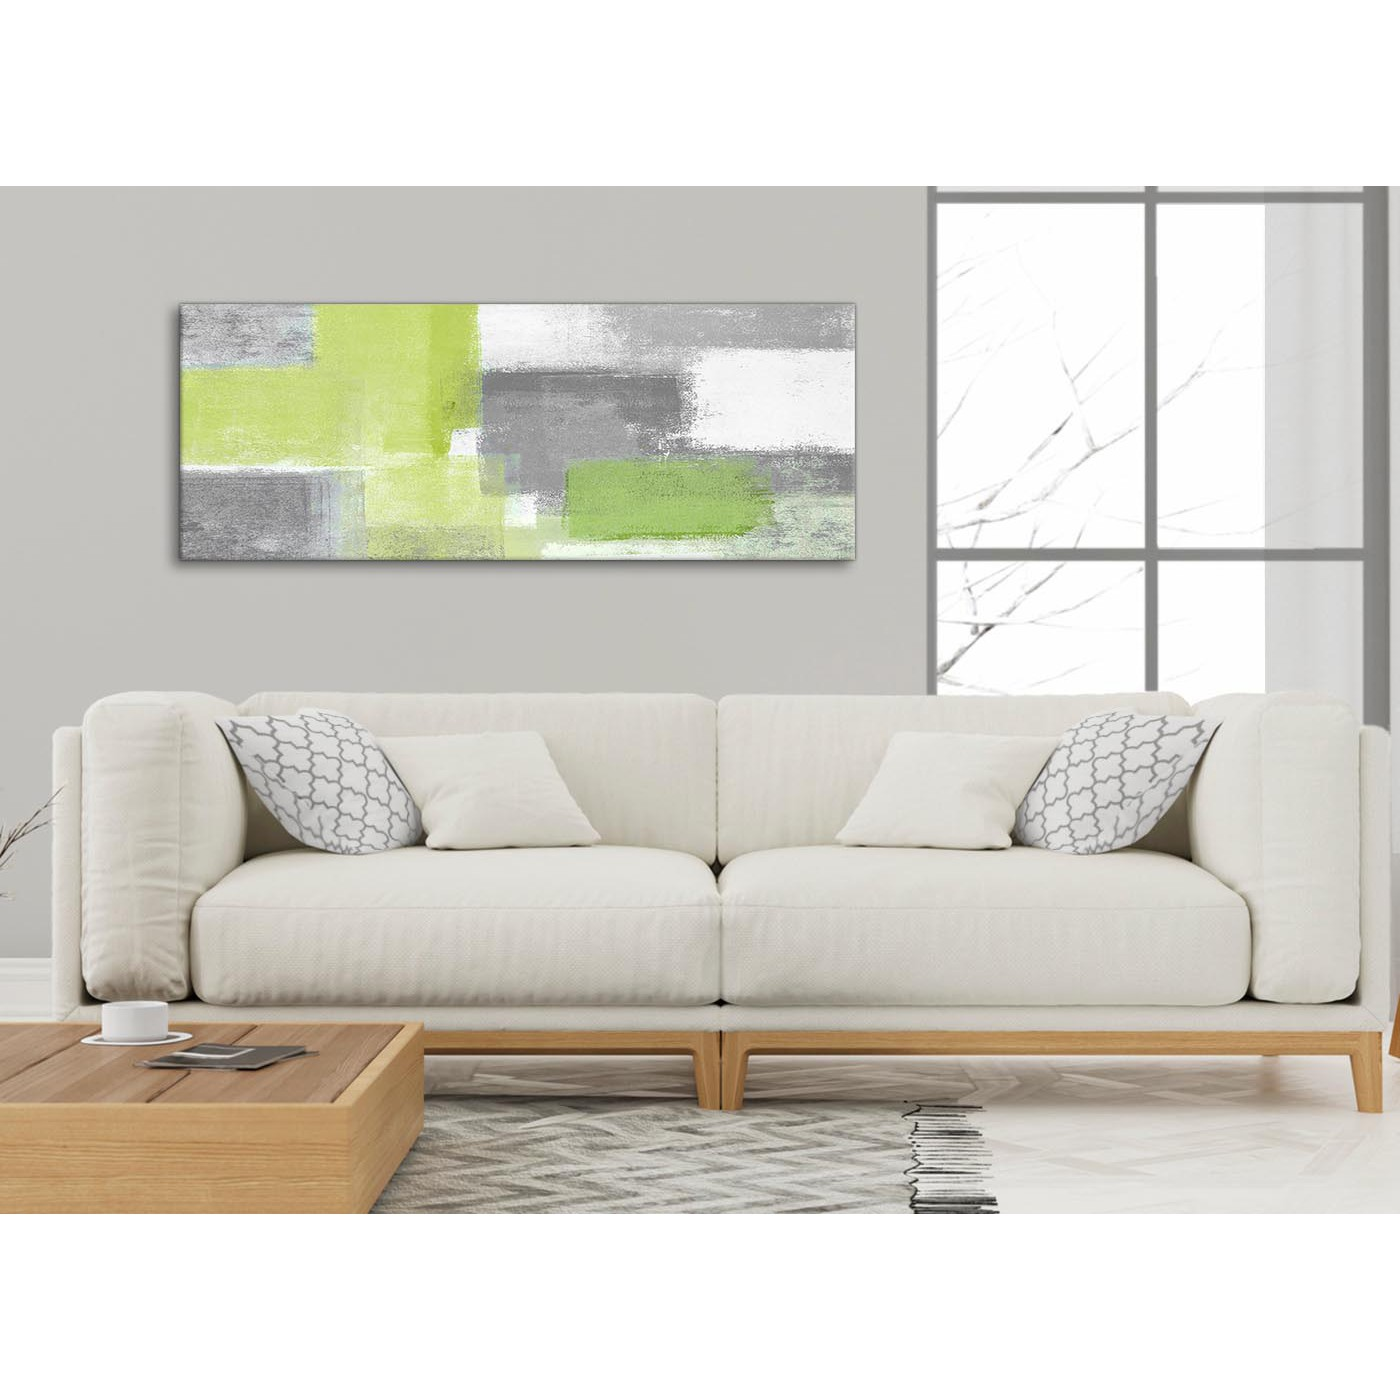 Display Gallery Item 3; Modern Lime Green Grey Abstract   Living Room  Canvas Wall Art Accessories   Abstract 1369   Display Gallery Item 4